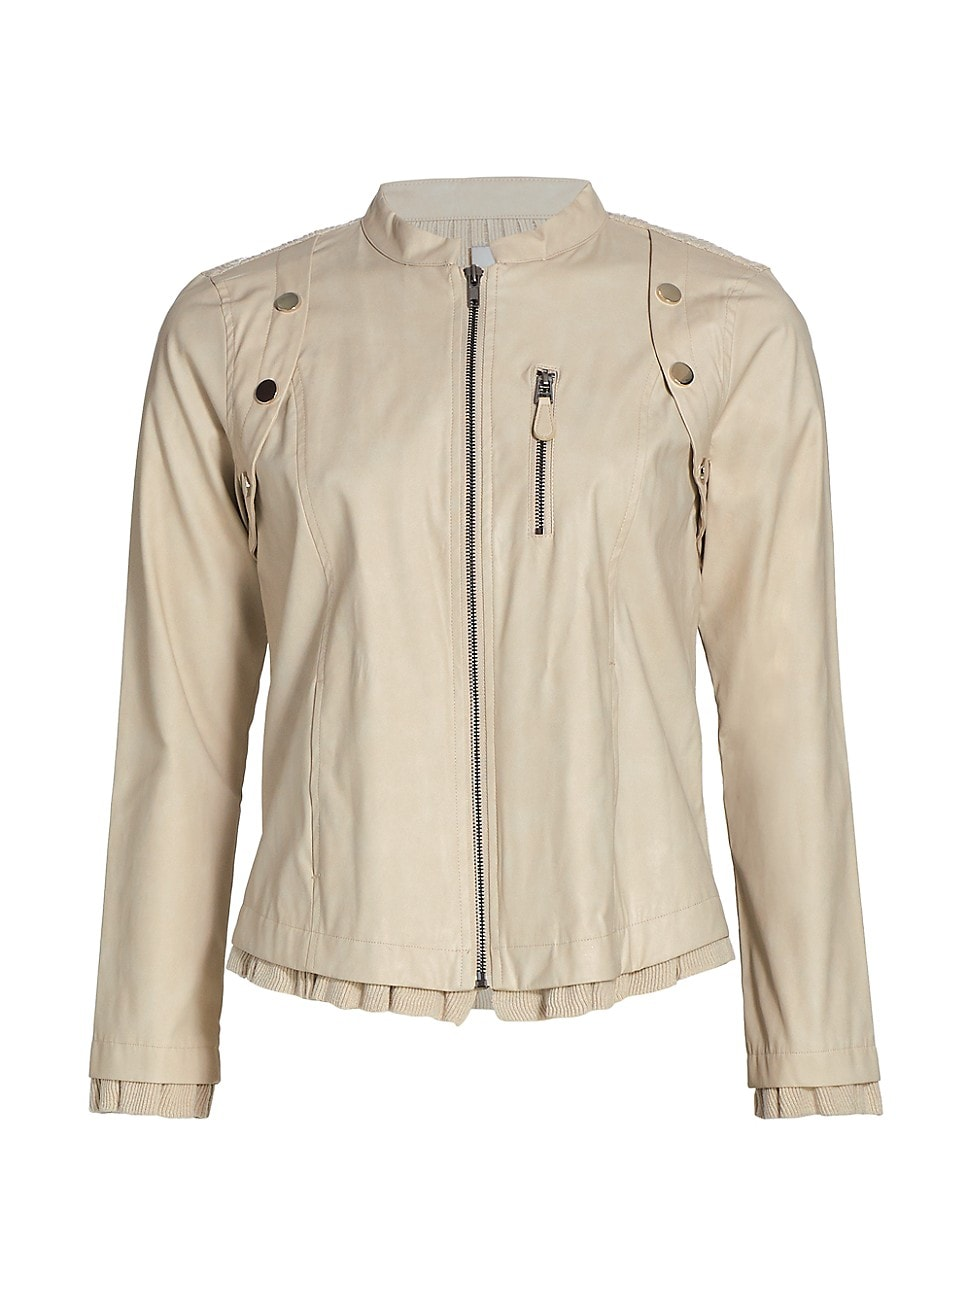 Nic + Zoe WOMEN'S FEMME FAUX LEATHER JACKET